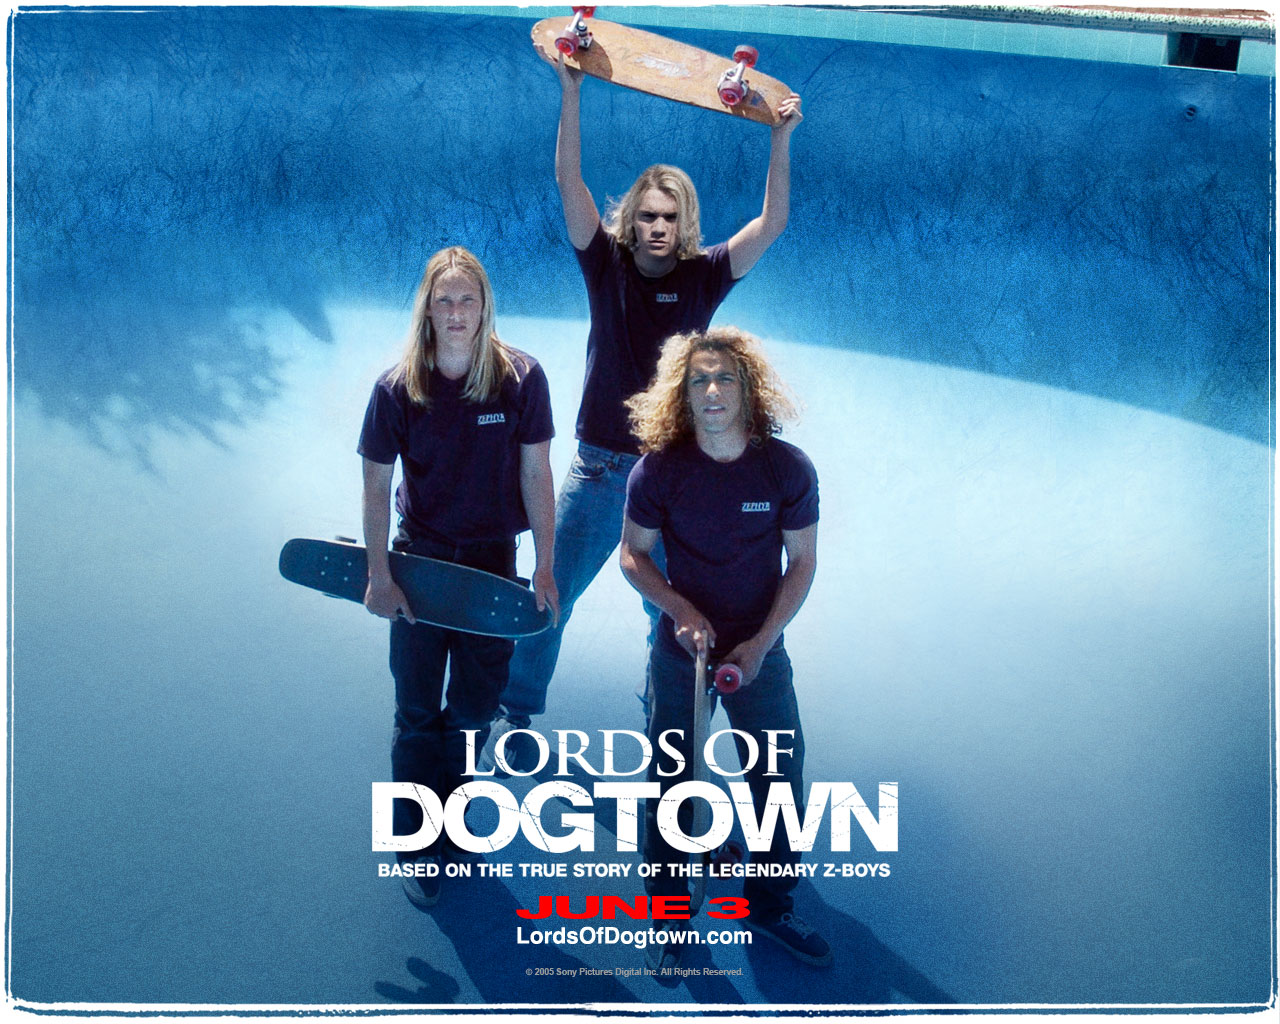 http://2.bp.blogspot.com/_K-WzjJ_cNKY/TDzuIGEThpI/AAAAAAAAAp0/pdgvOCoLjgg/s1600/Heath_Ledger_in_Lords_of_Dogtown_Wallpaper_5_1280.jpg